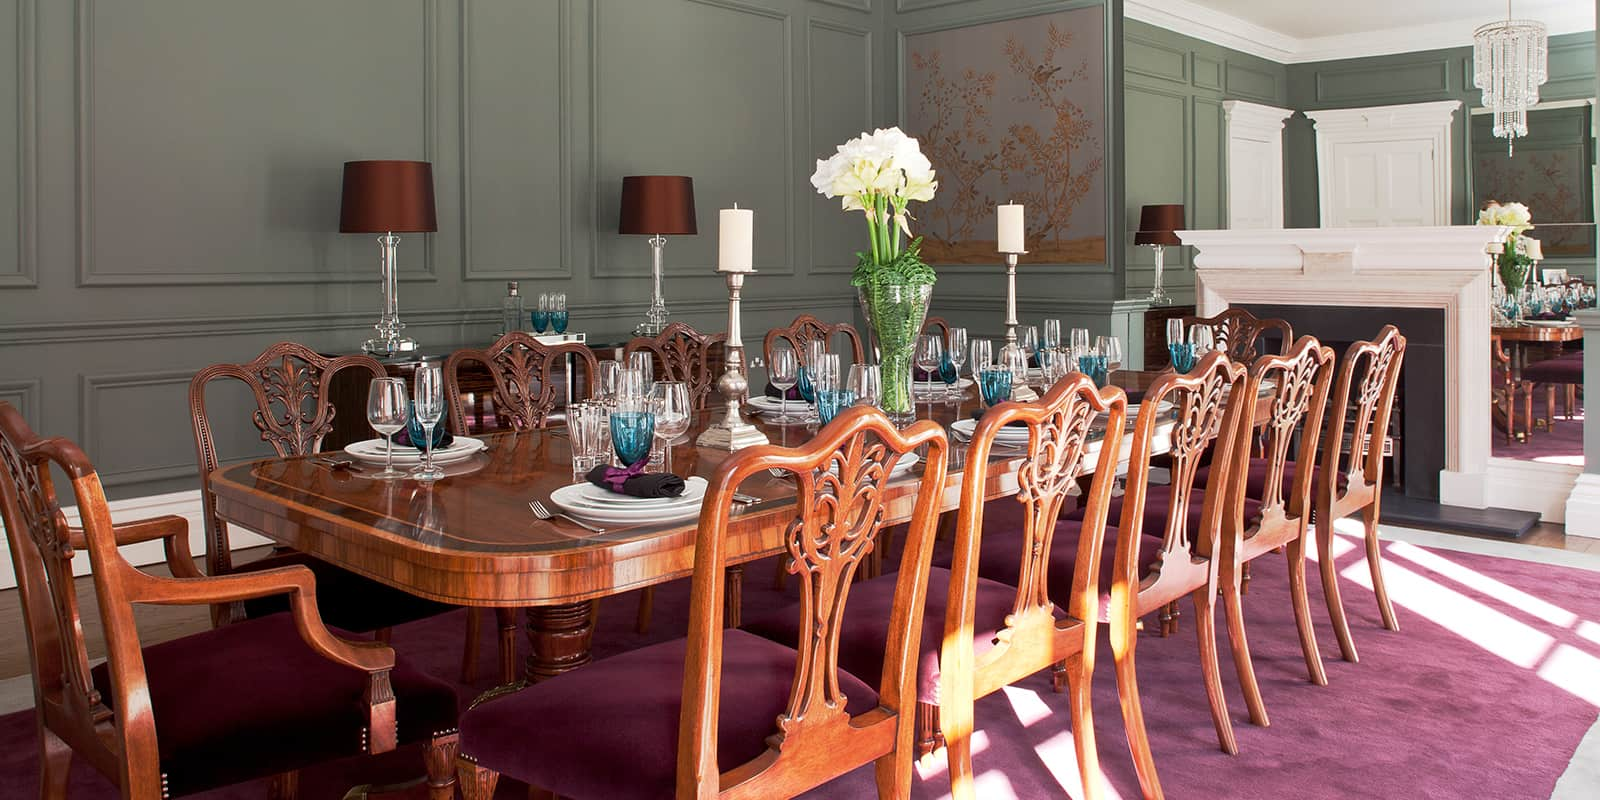 Grand oak dining table and chairs